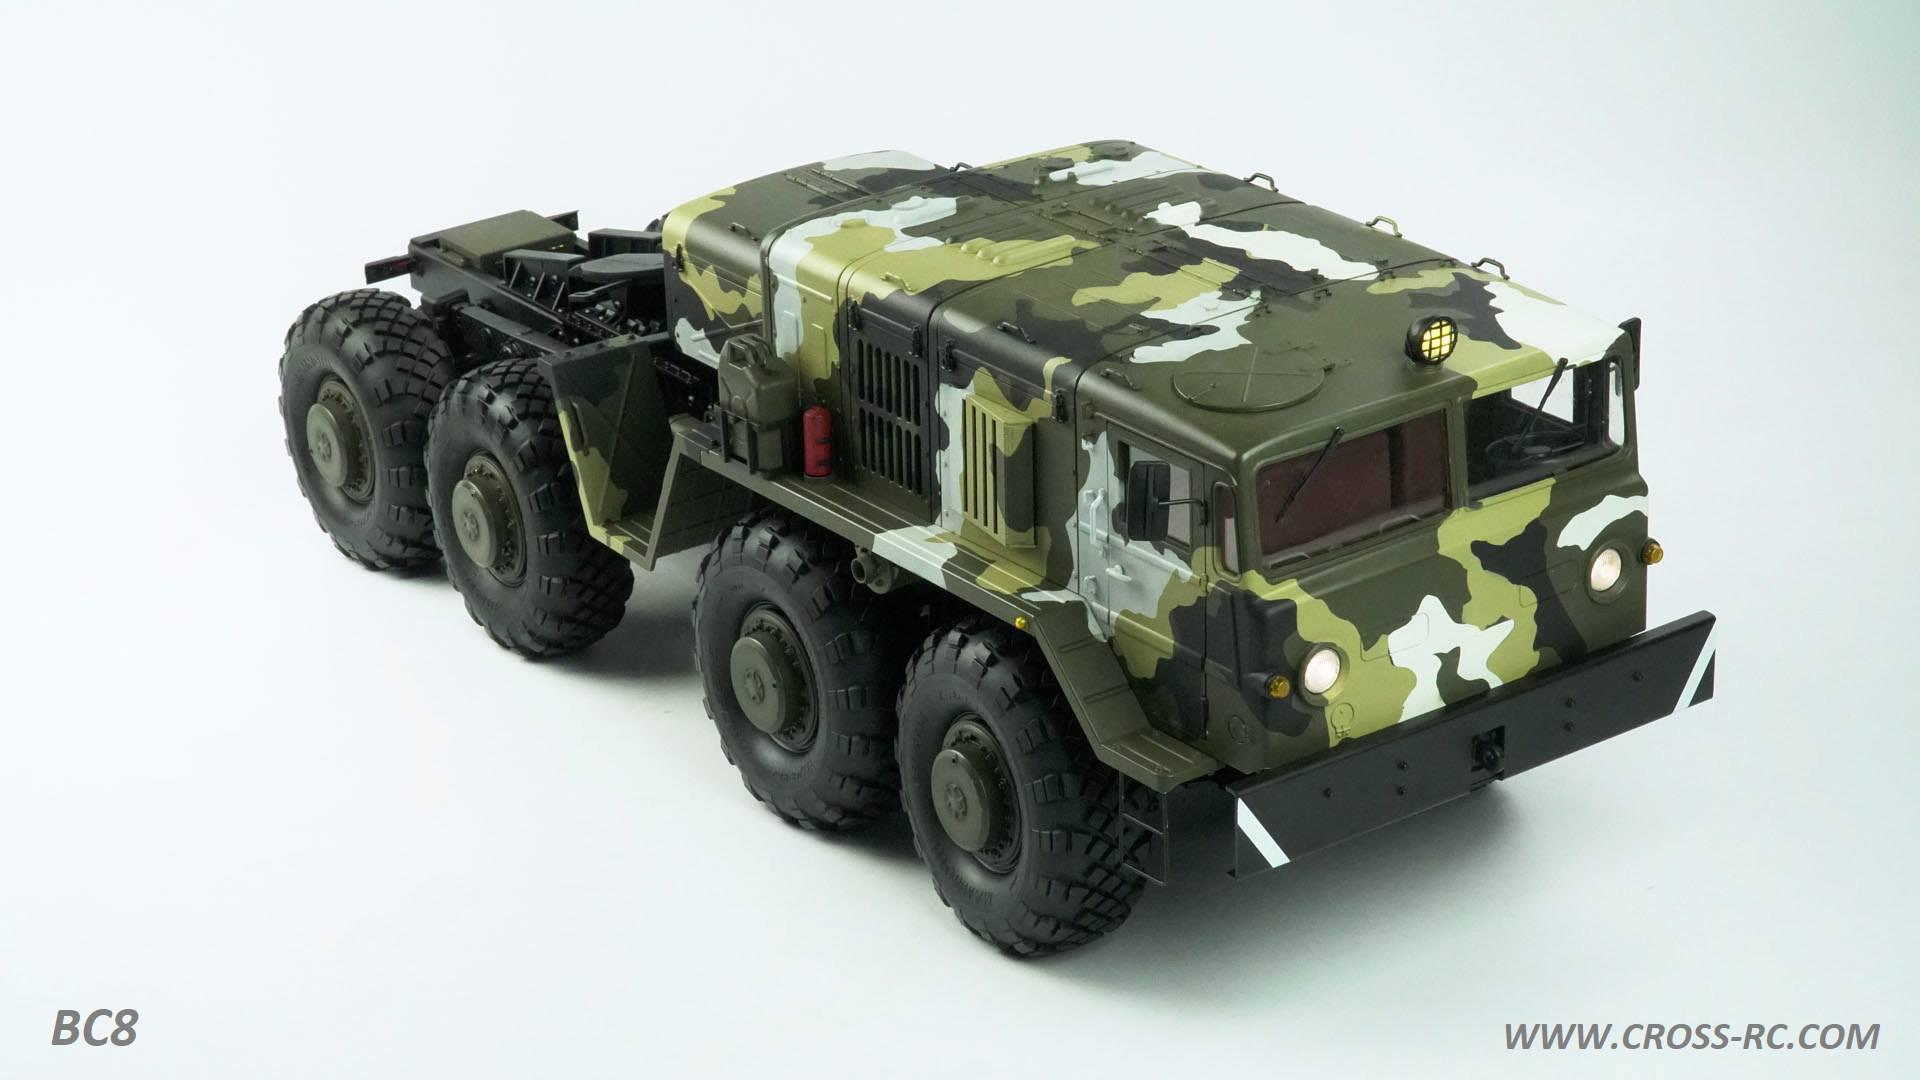 Cross-RC BC8 - Big Rigs and Scale Armour - Tamiyaclub com